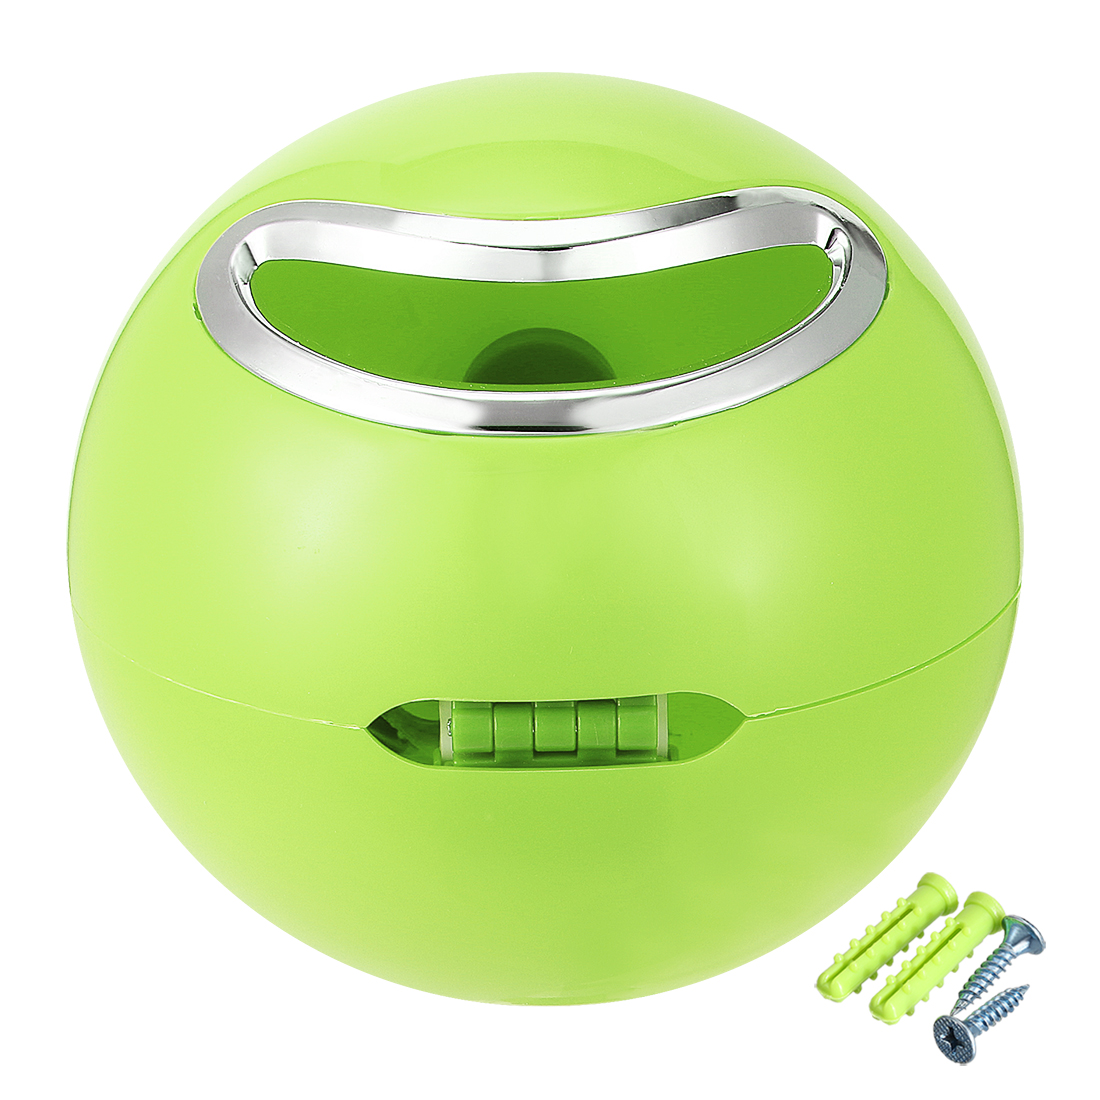 Unique Bargains 180mm Dia ABS Plastic Green Dual-Purpose Round Toilet Roll Paper Holder - image 7 of 7